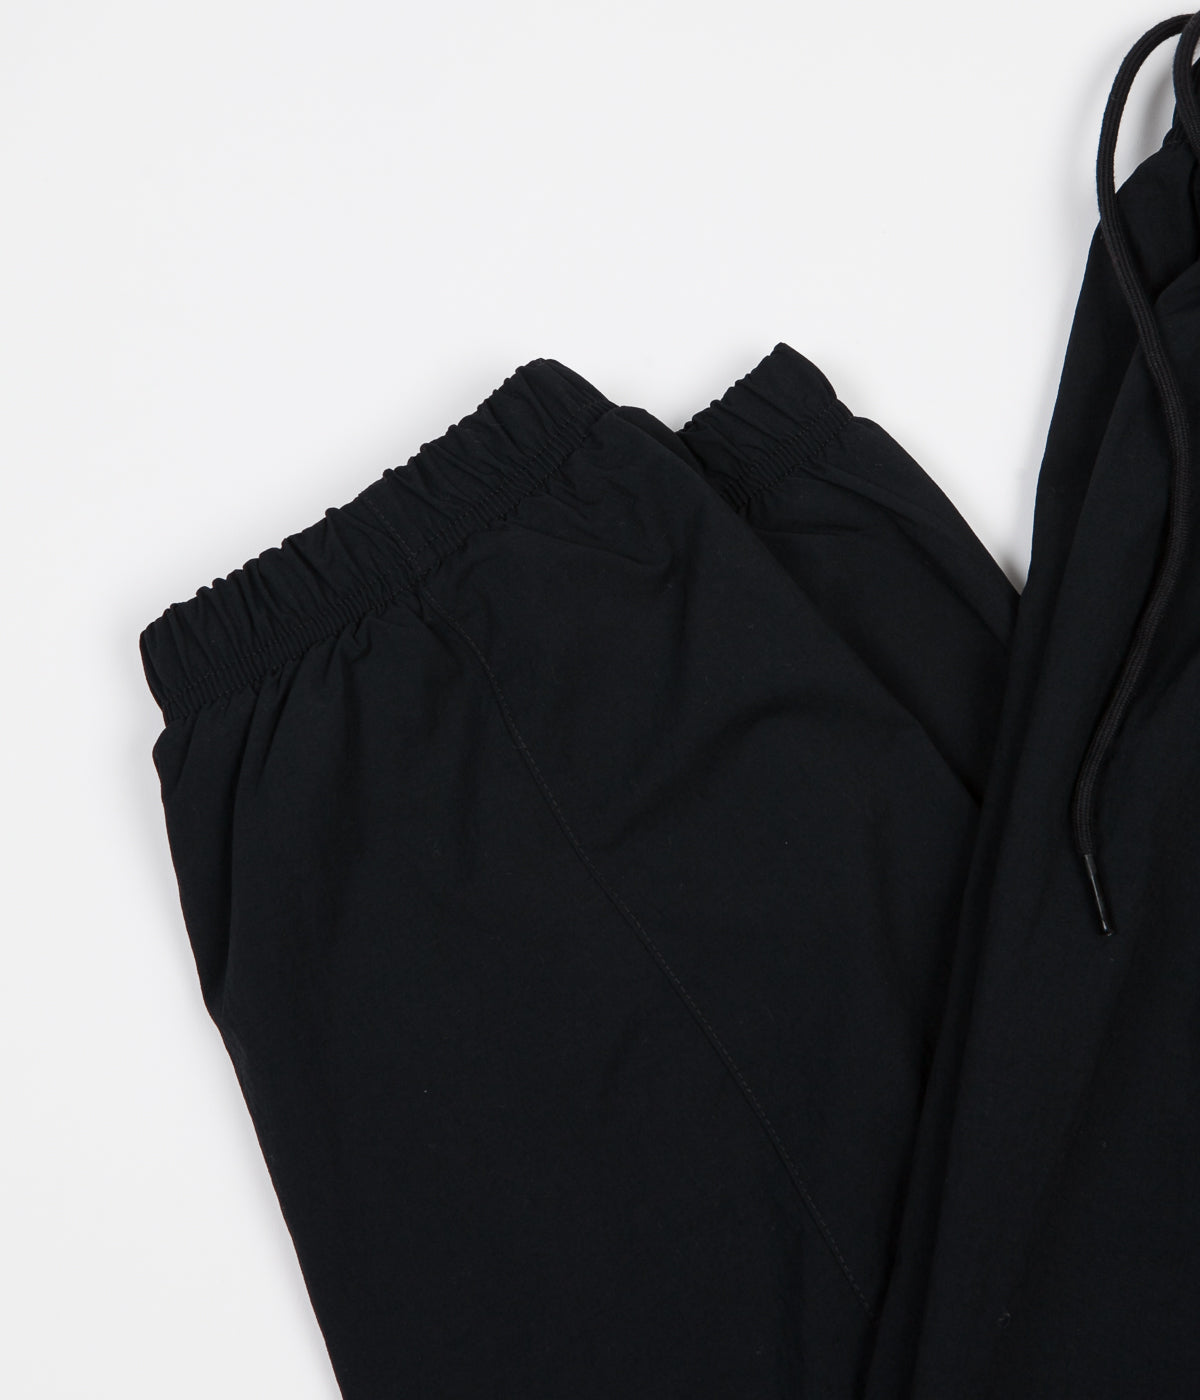 Nike SB Flex Sweatpants - Black / White